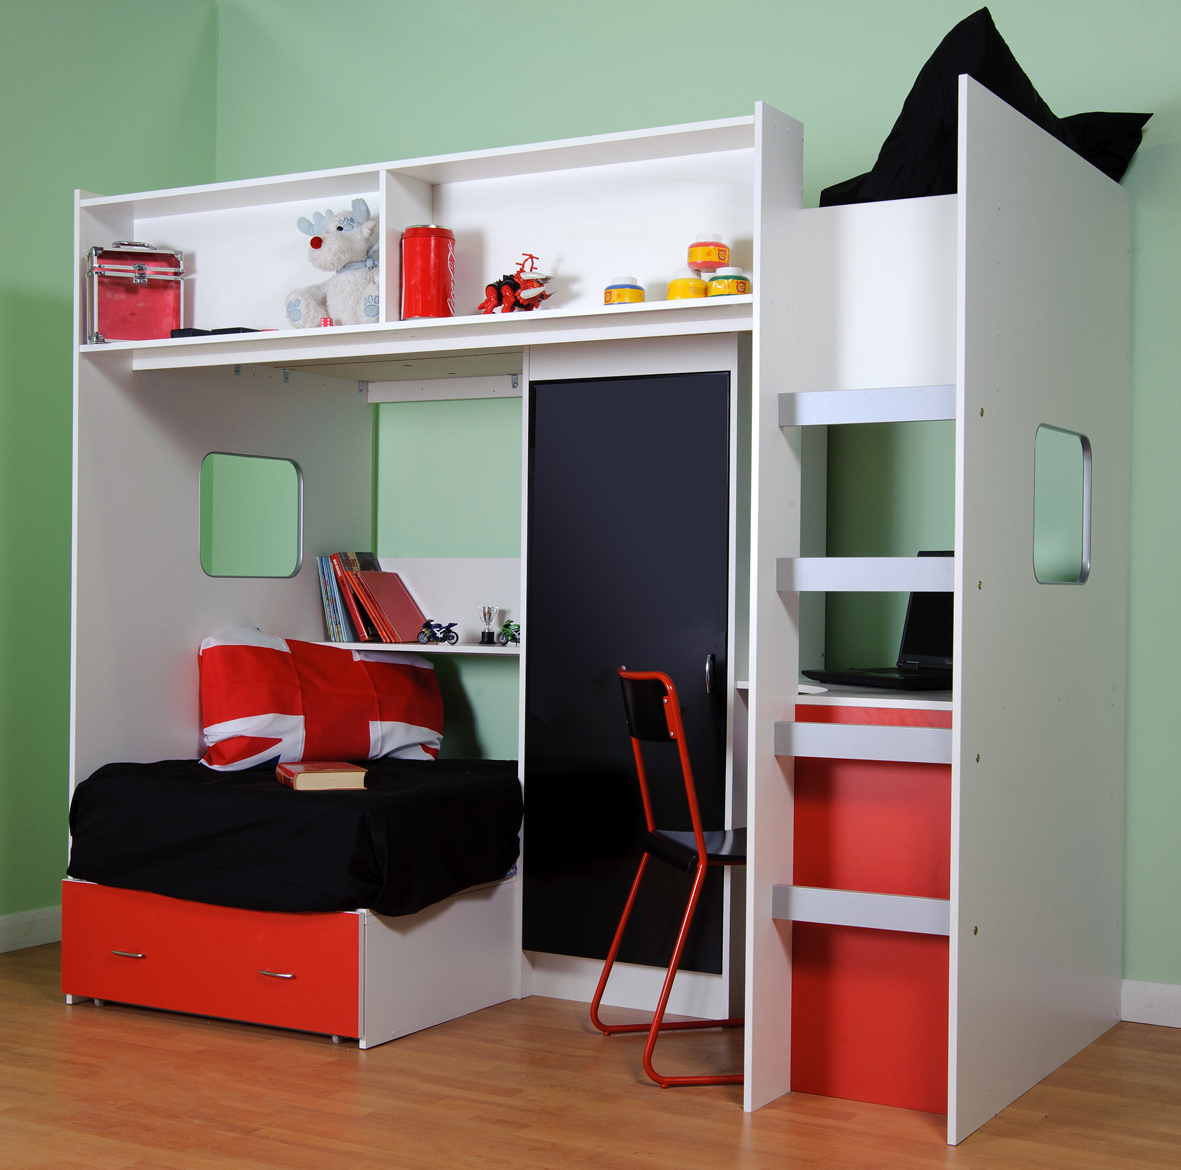 Small Box Room Cabin Bed: Delux High Sleeper Bed